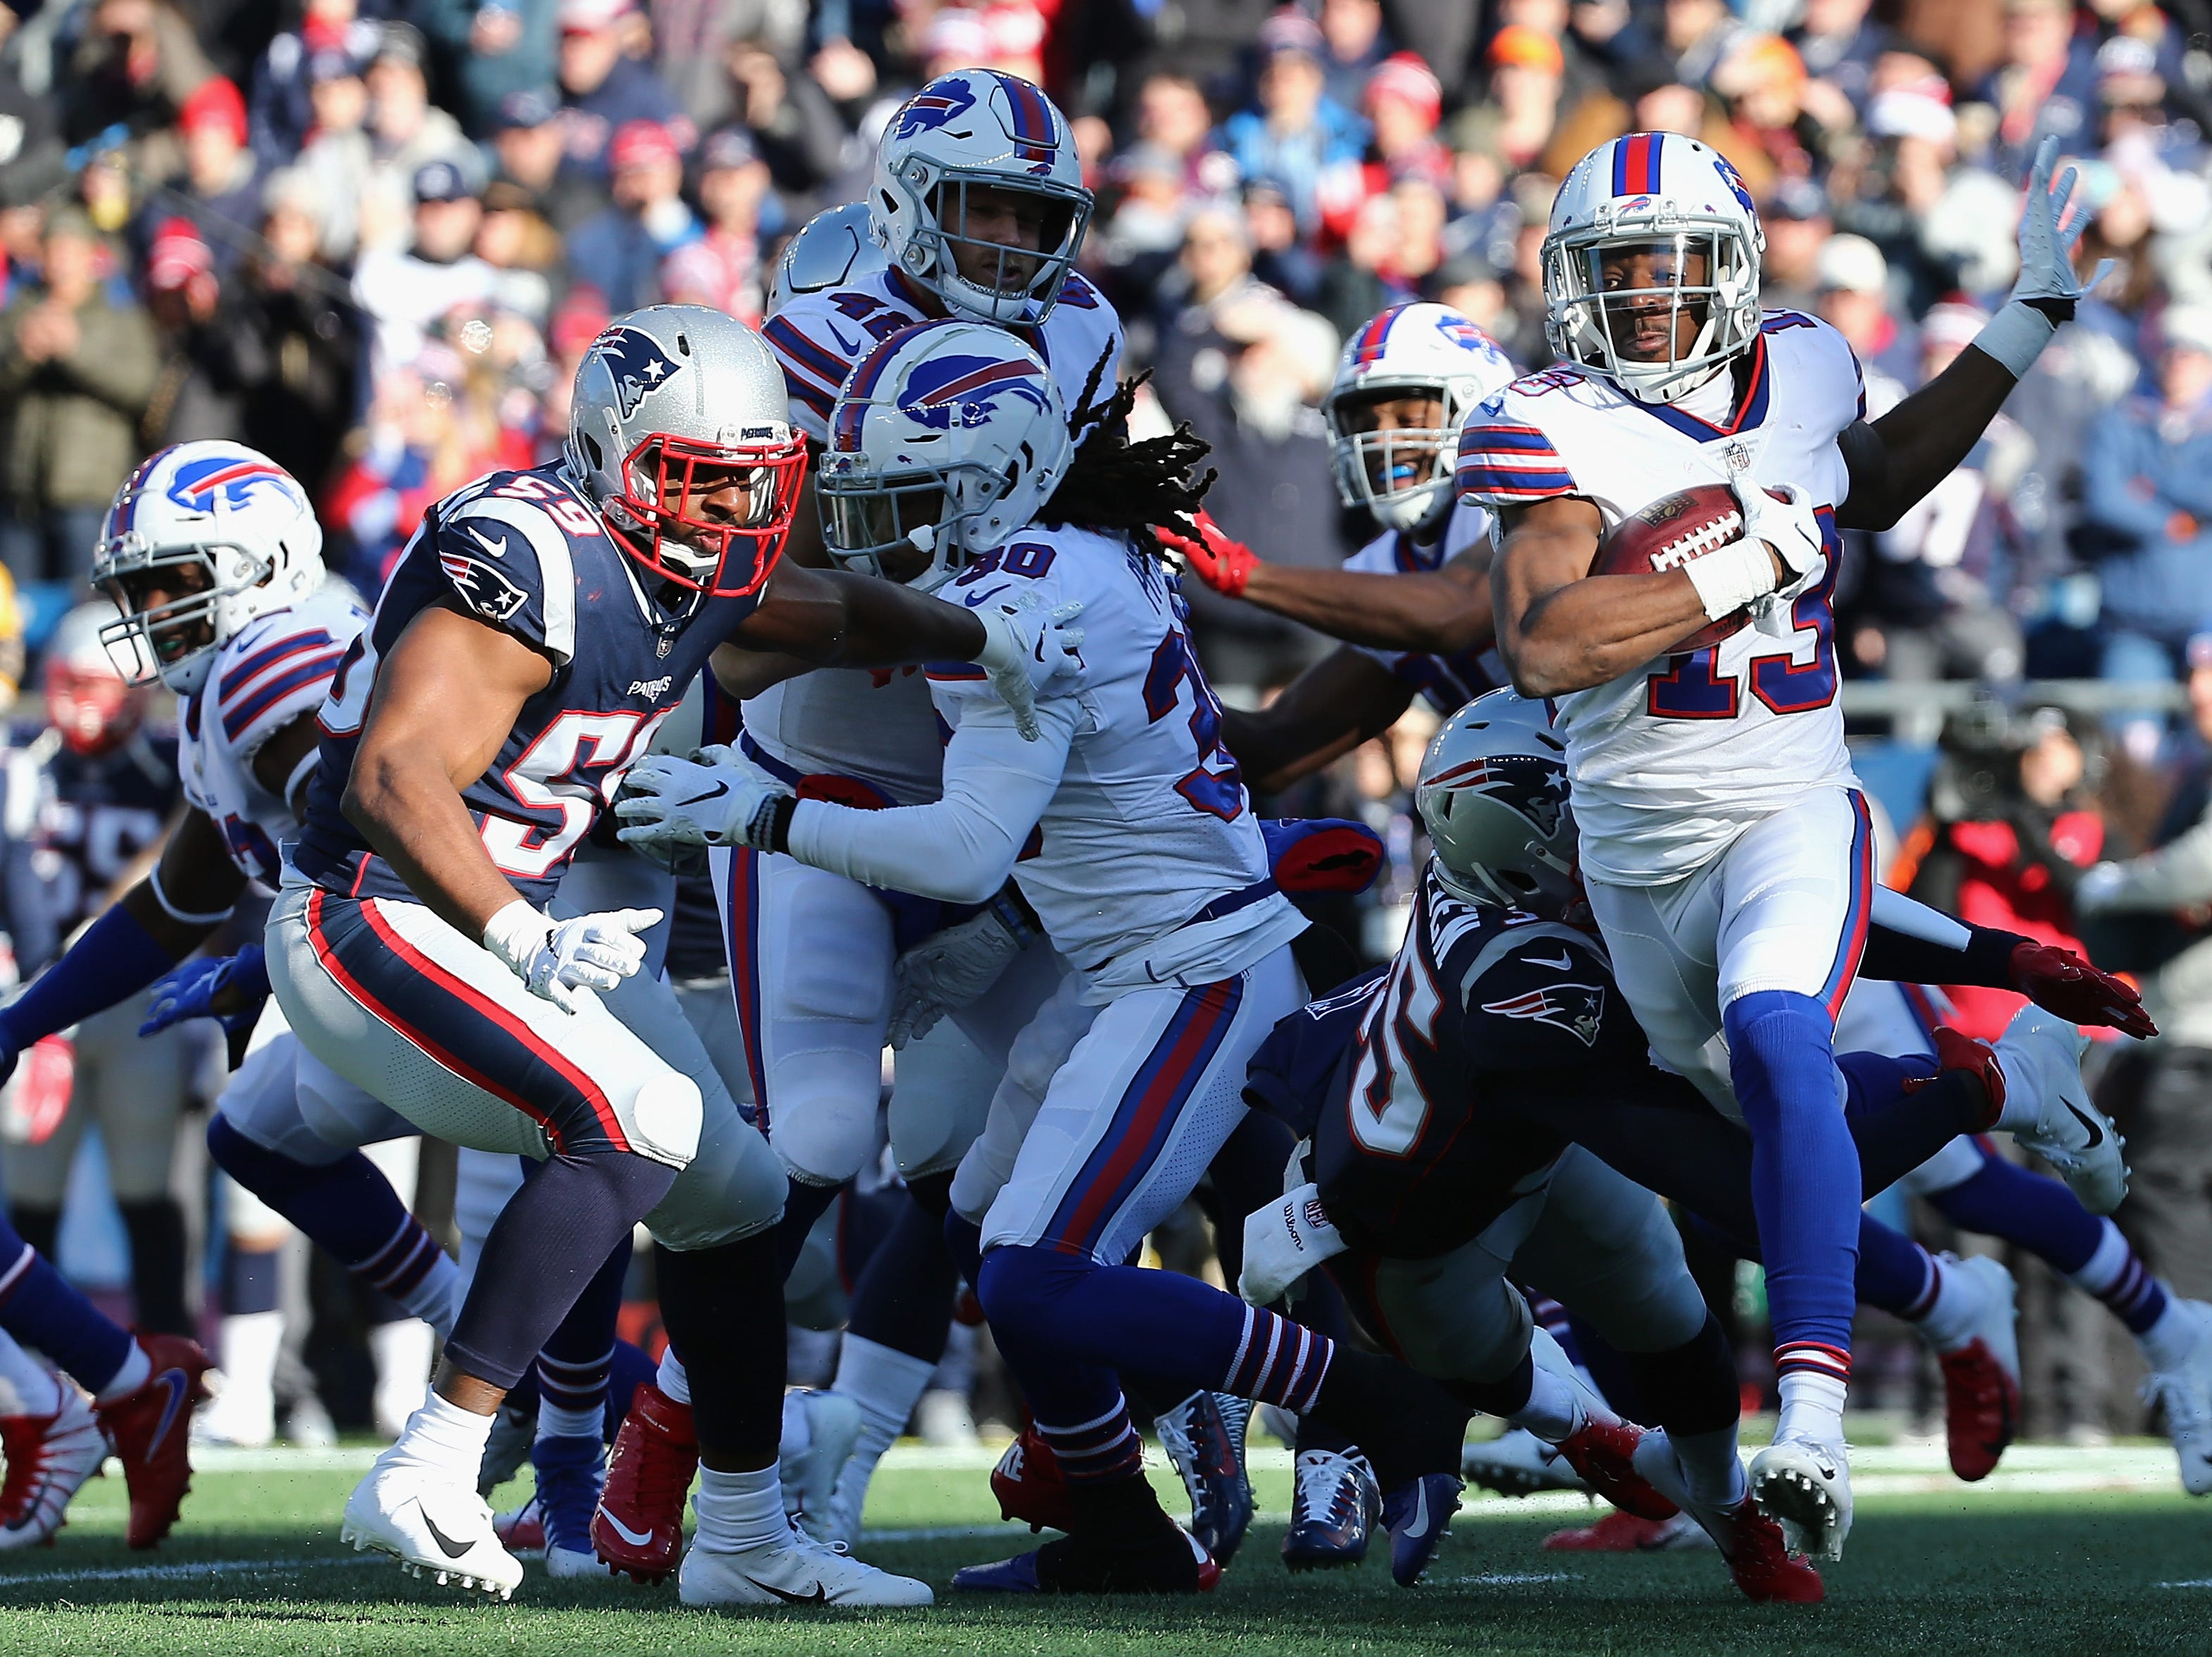 FOXBOROUGH, MA - DECEMBER 23:  Victor Bolden Jr. #13 of the Buffalo Bills runs with the ball during the first half against the New England Patriots at Gillette Stadium on December 23, 2018 in Foxborough, Massachusetts.  (Photo by Jim Rogash/Getty Images)